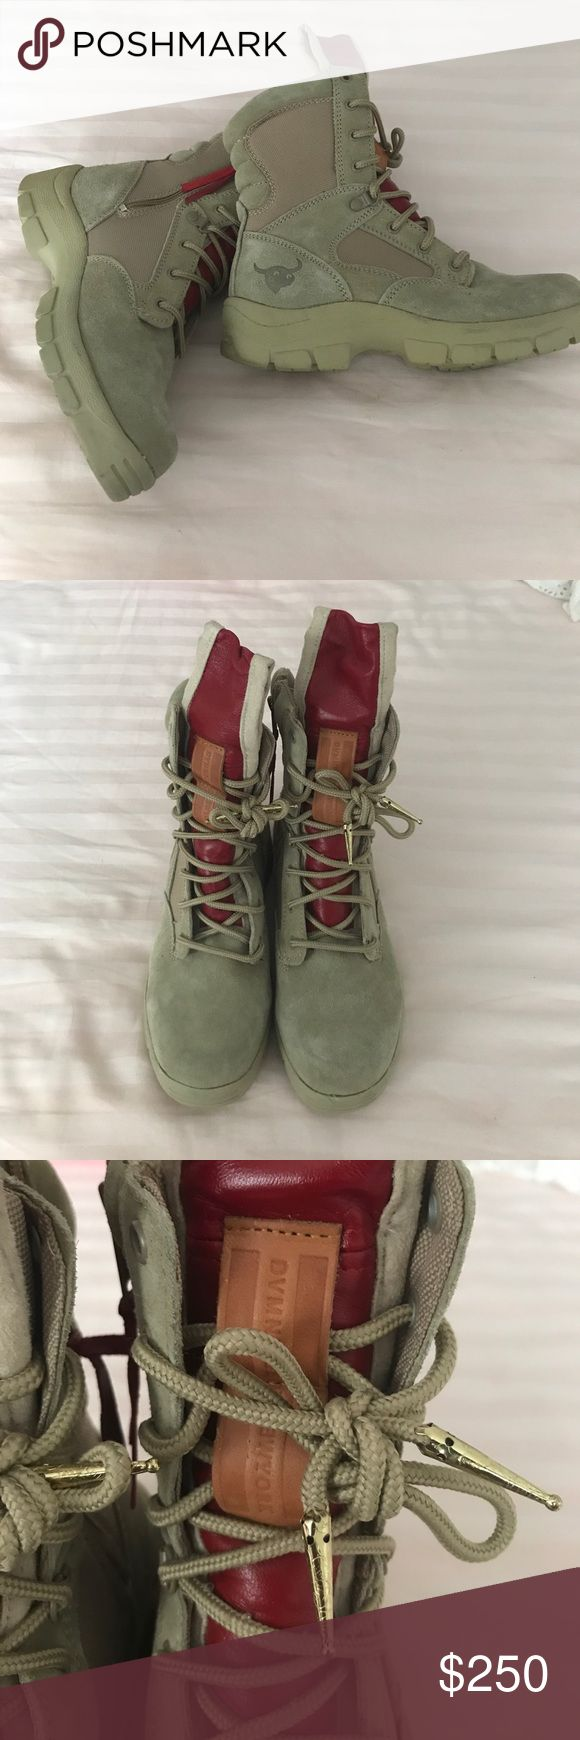 DVMN Pigeon!!! Only worn once. Cute boots. Men's boots. I called myself trying to get away with them but they make my feet look big lol Shoes Rain & Snow Boots